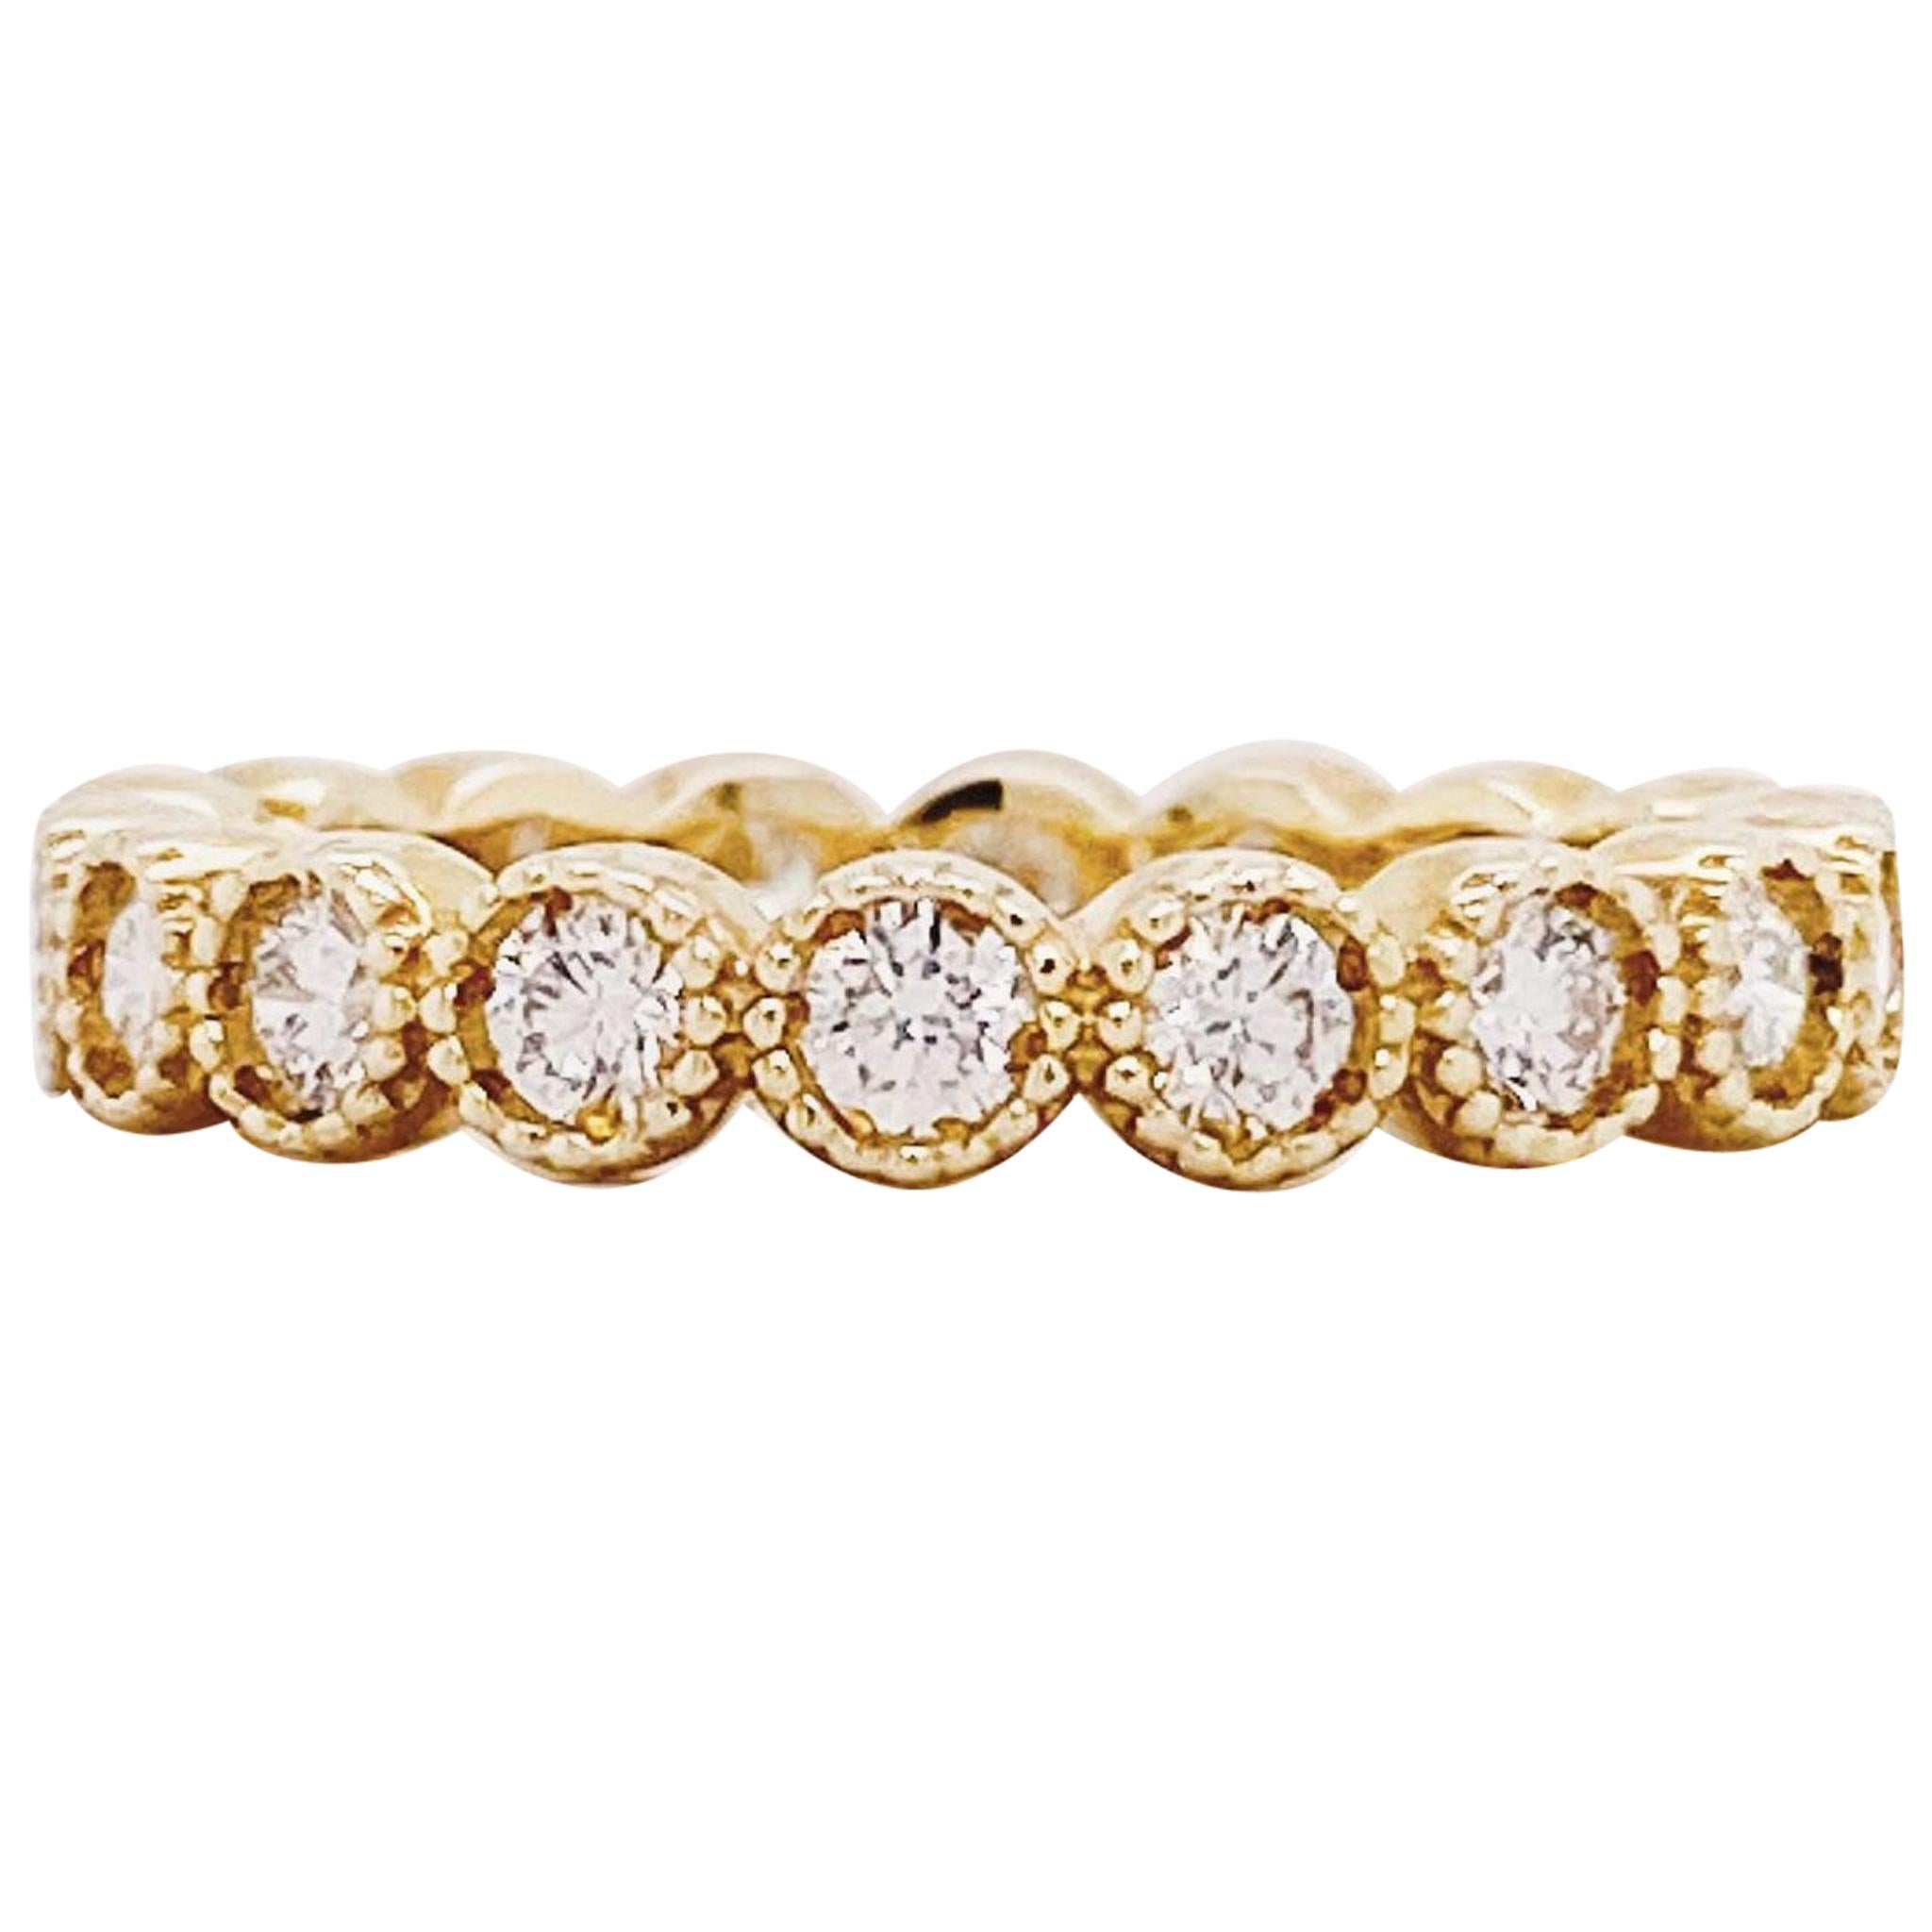 1 Carat Diamond Bezel Eternity Band 14K Yellow Gold 1.00 ct Diamond Wedding Band